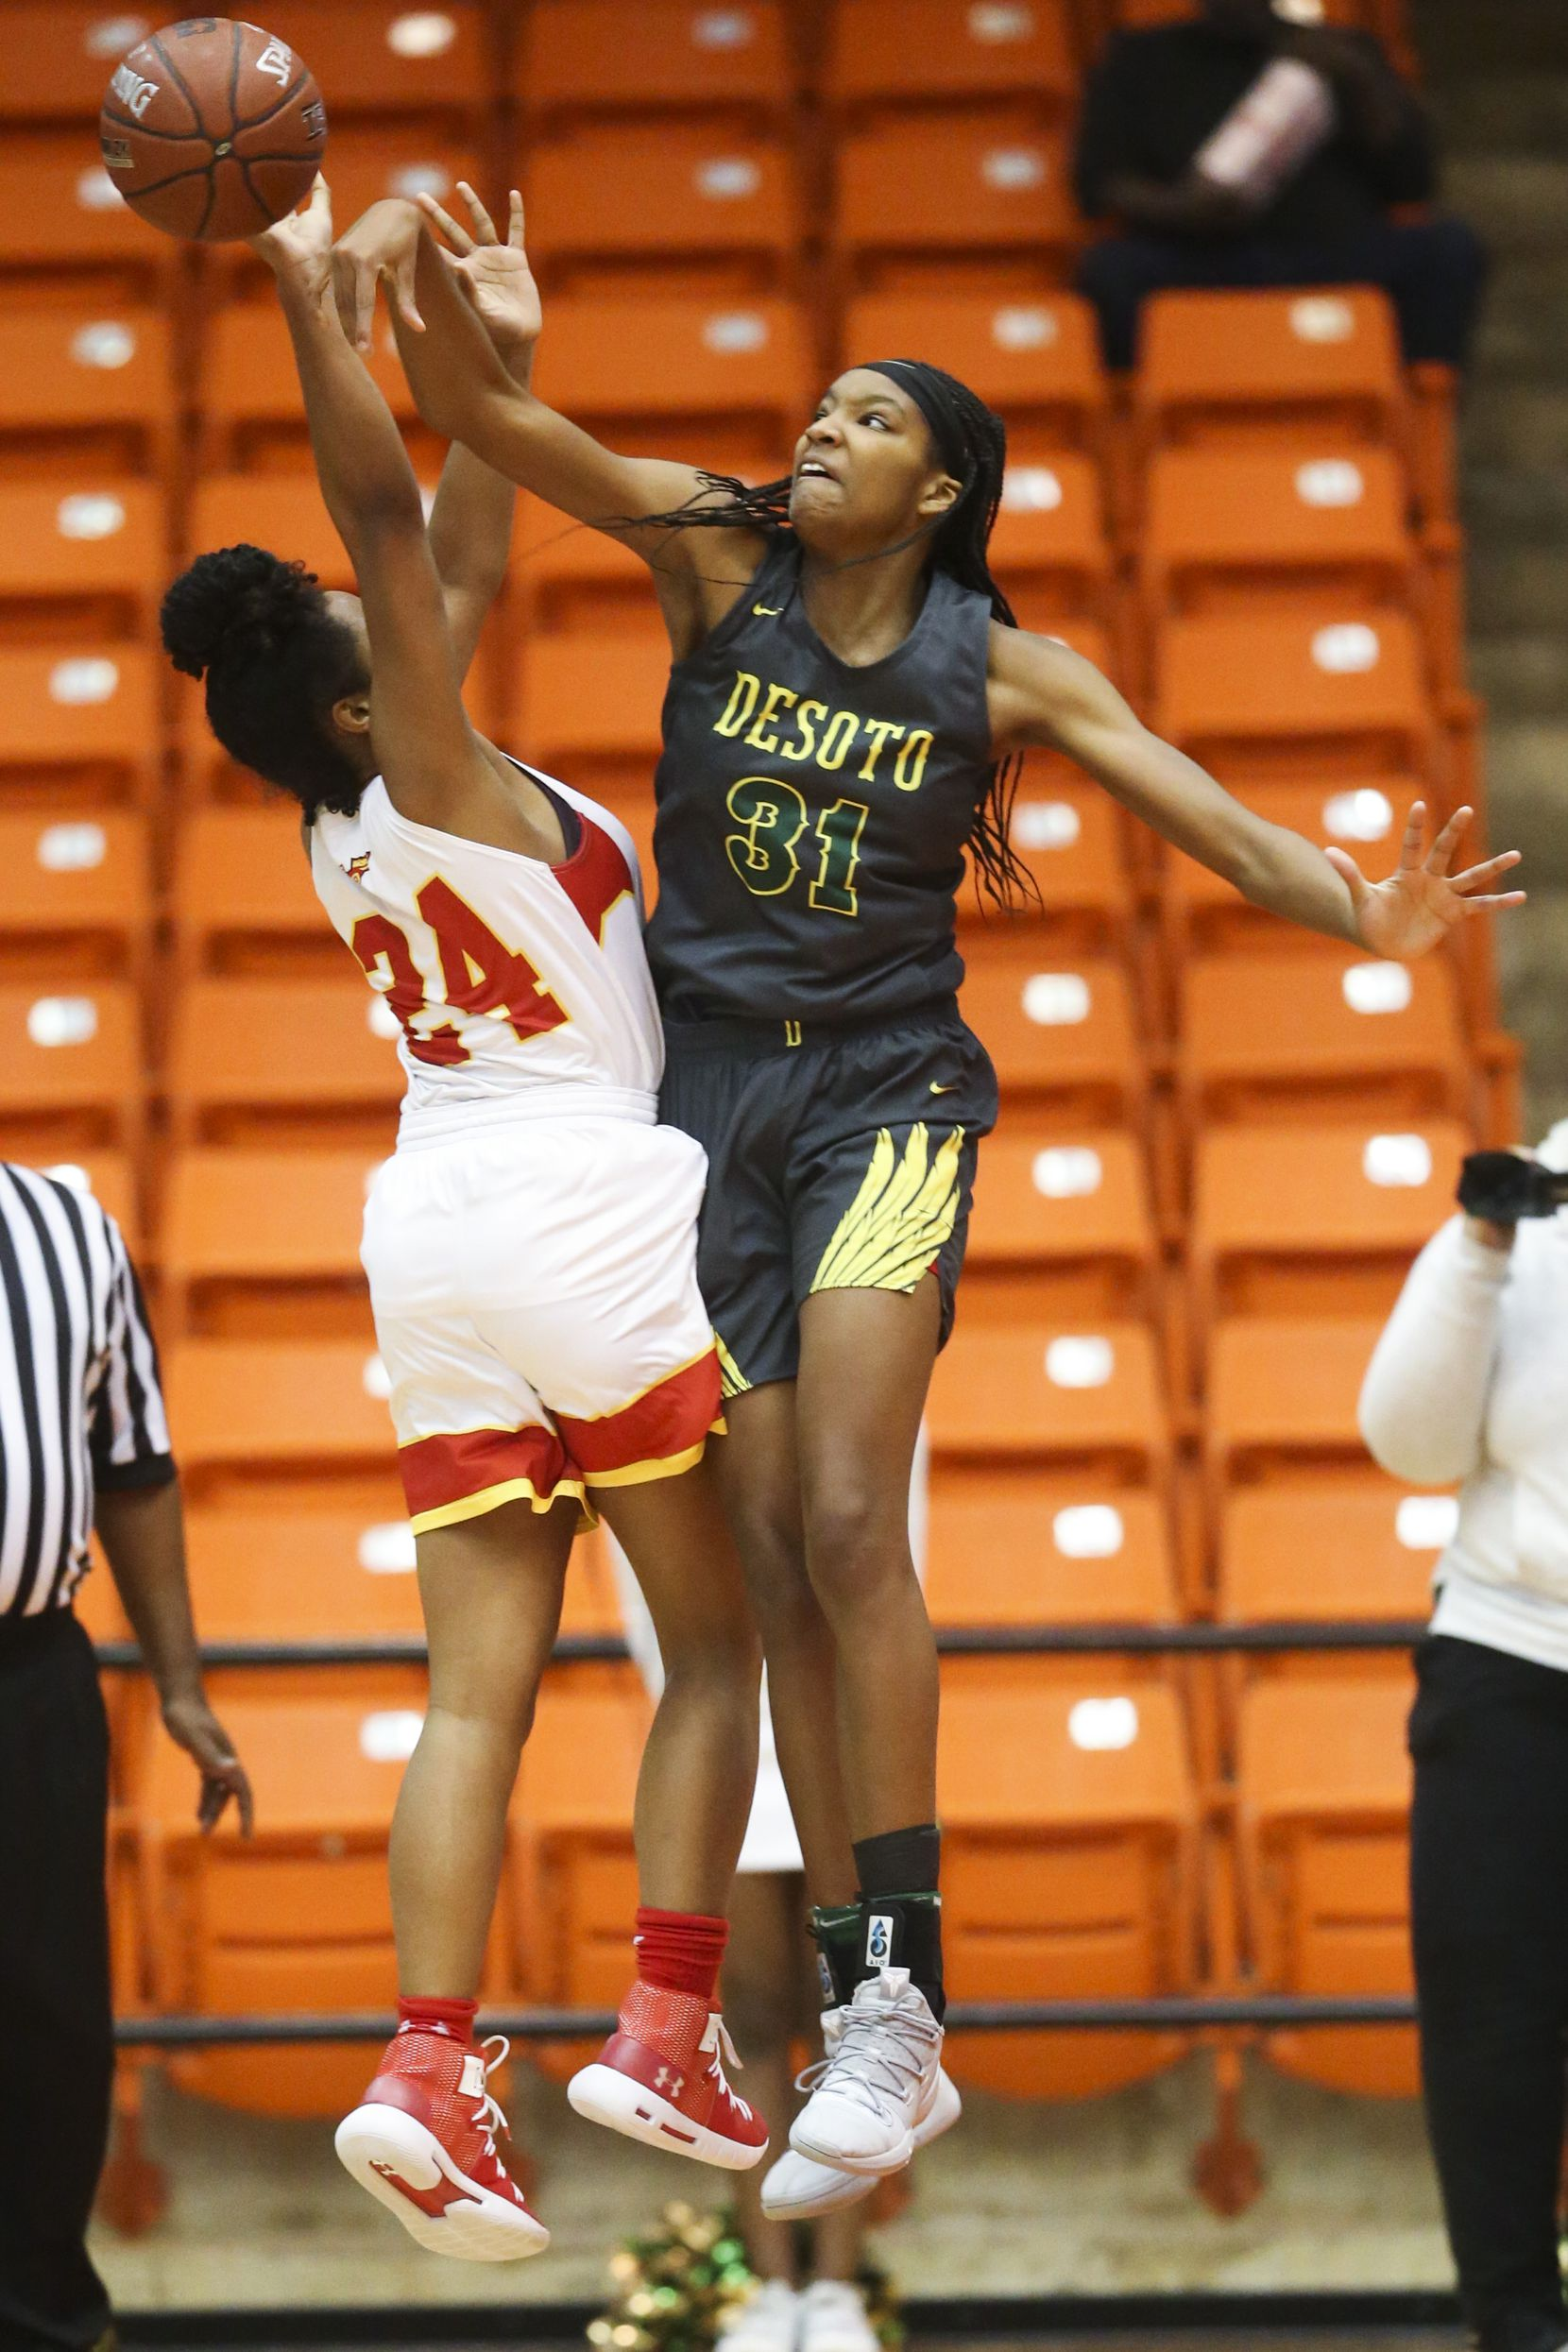 South Grand Prairie guard Vasana Kearney (24) gets her shot blocked by DeSoto forward Sa'Myah Smith (31) during a Class 6A Region I women basketball game at Wilkerson-Greines Activity Center in Fort Worth, Texas on Saturday, Feb. 23, 2019. (Shaban Athuman/The Dallas Morning News)